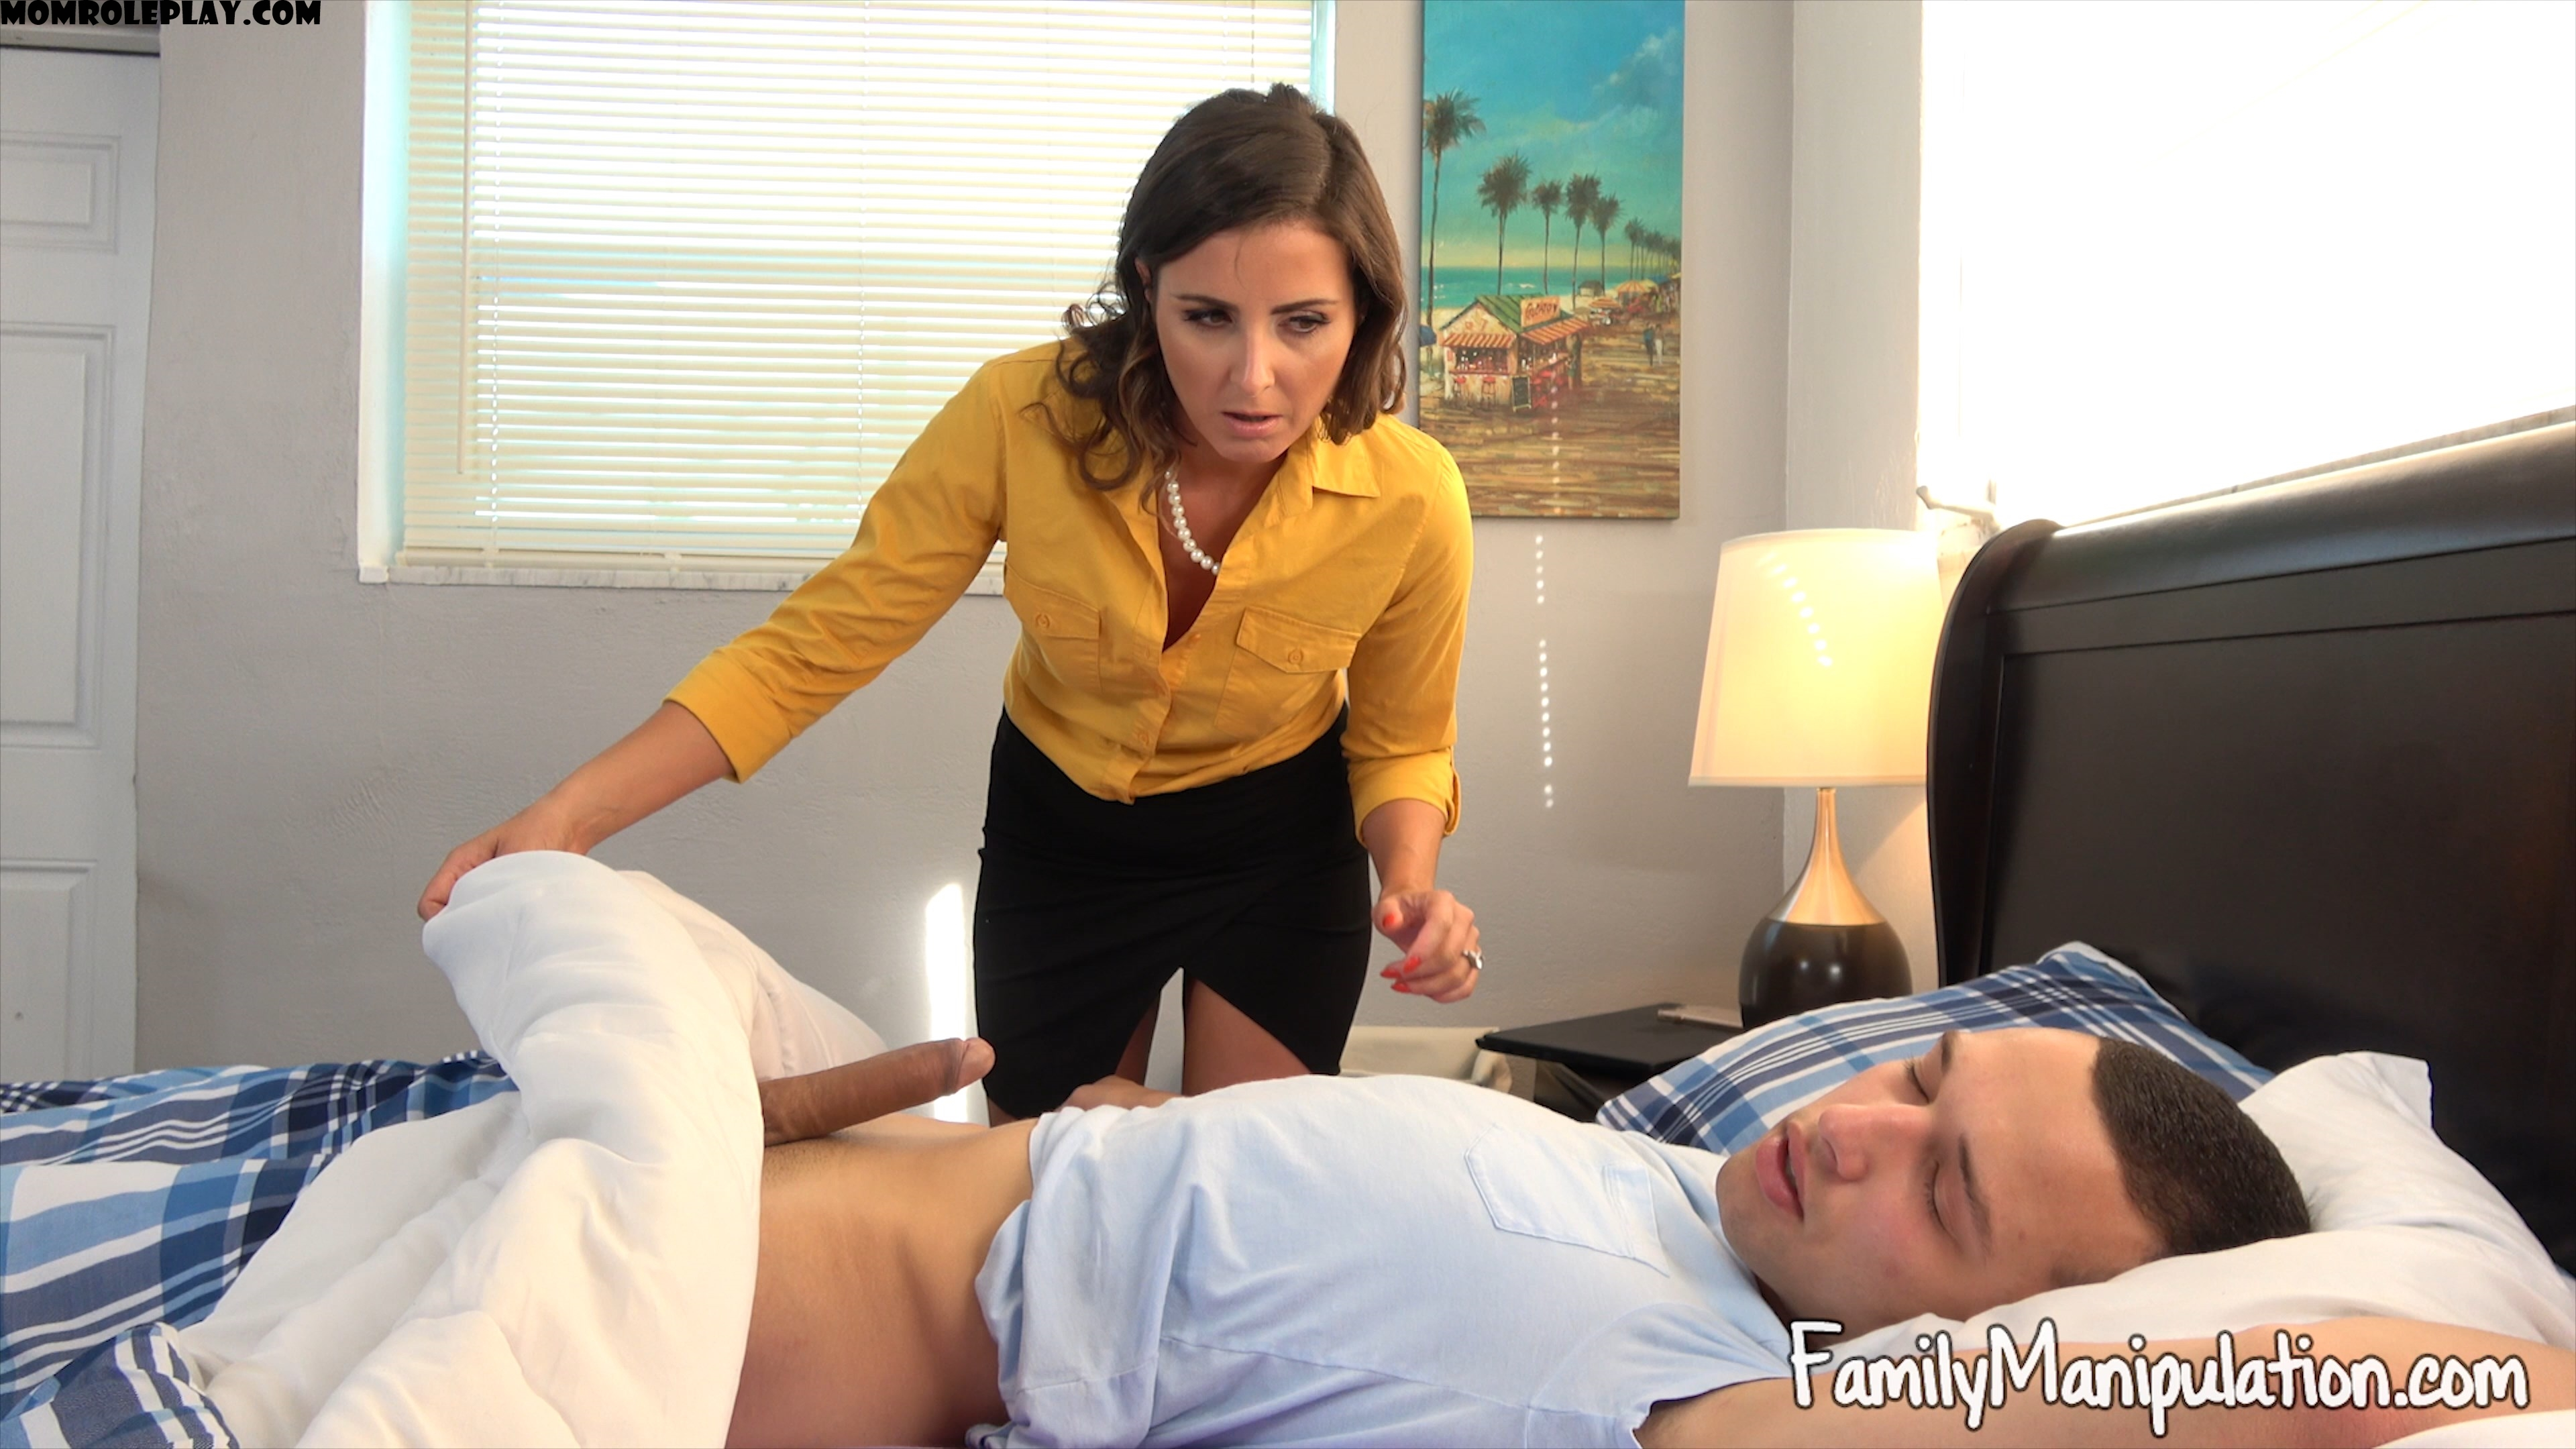 Family Manipulation - Helena Price - Horny Mommy Consoles Heart Broken Son